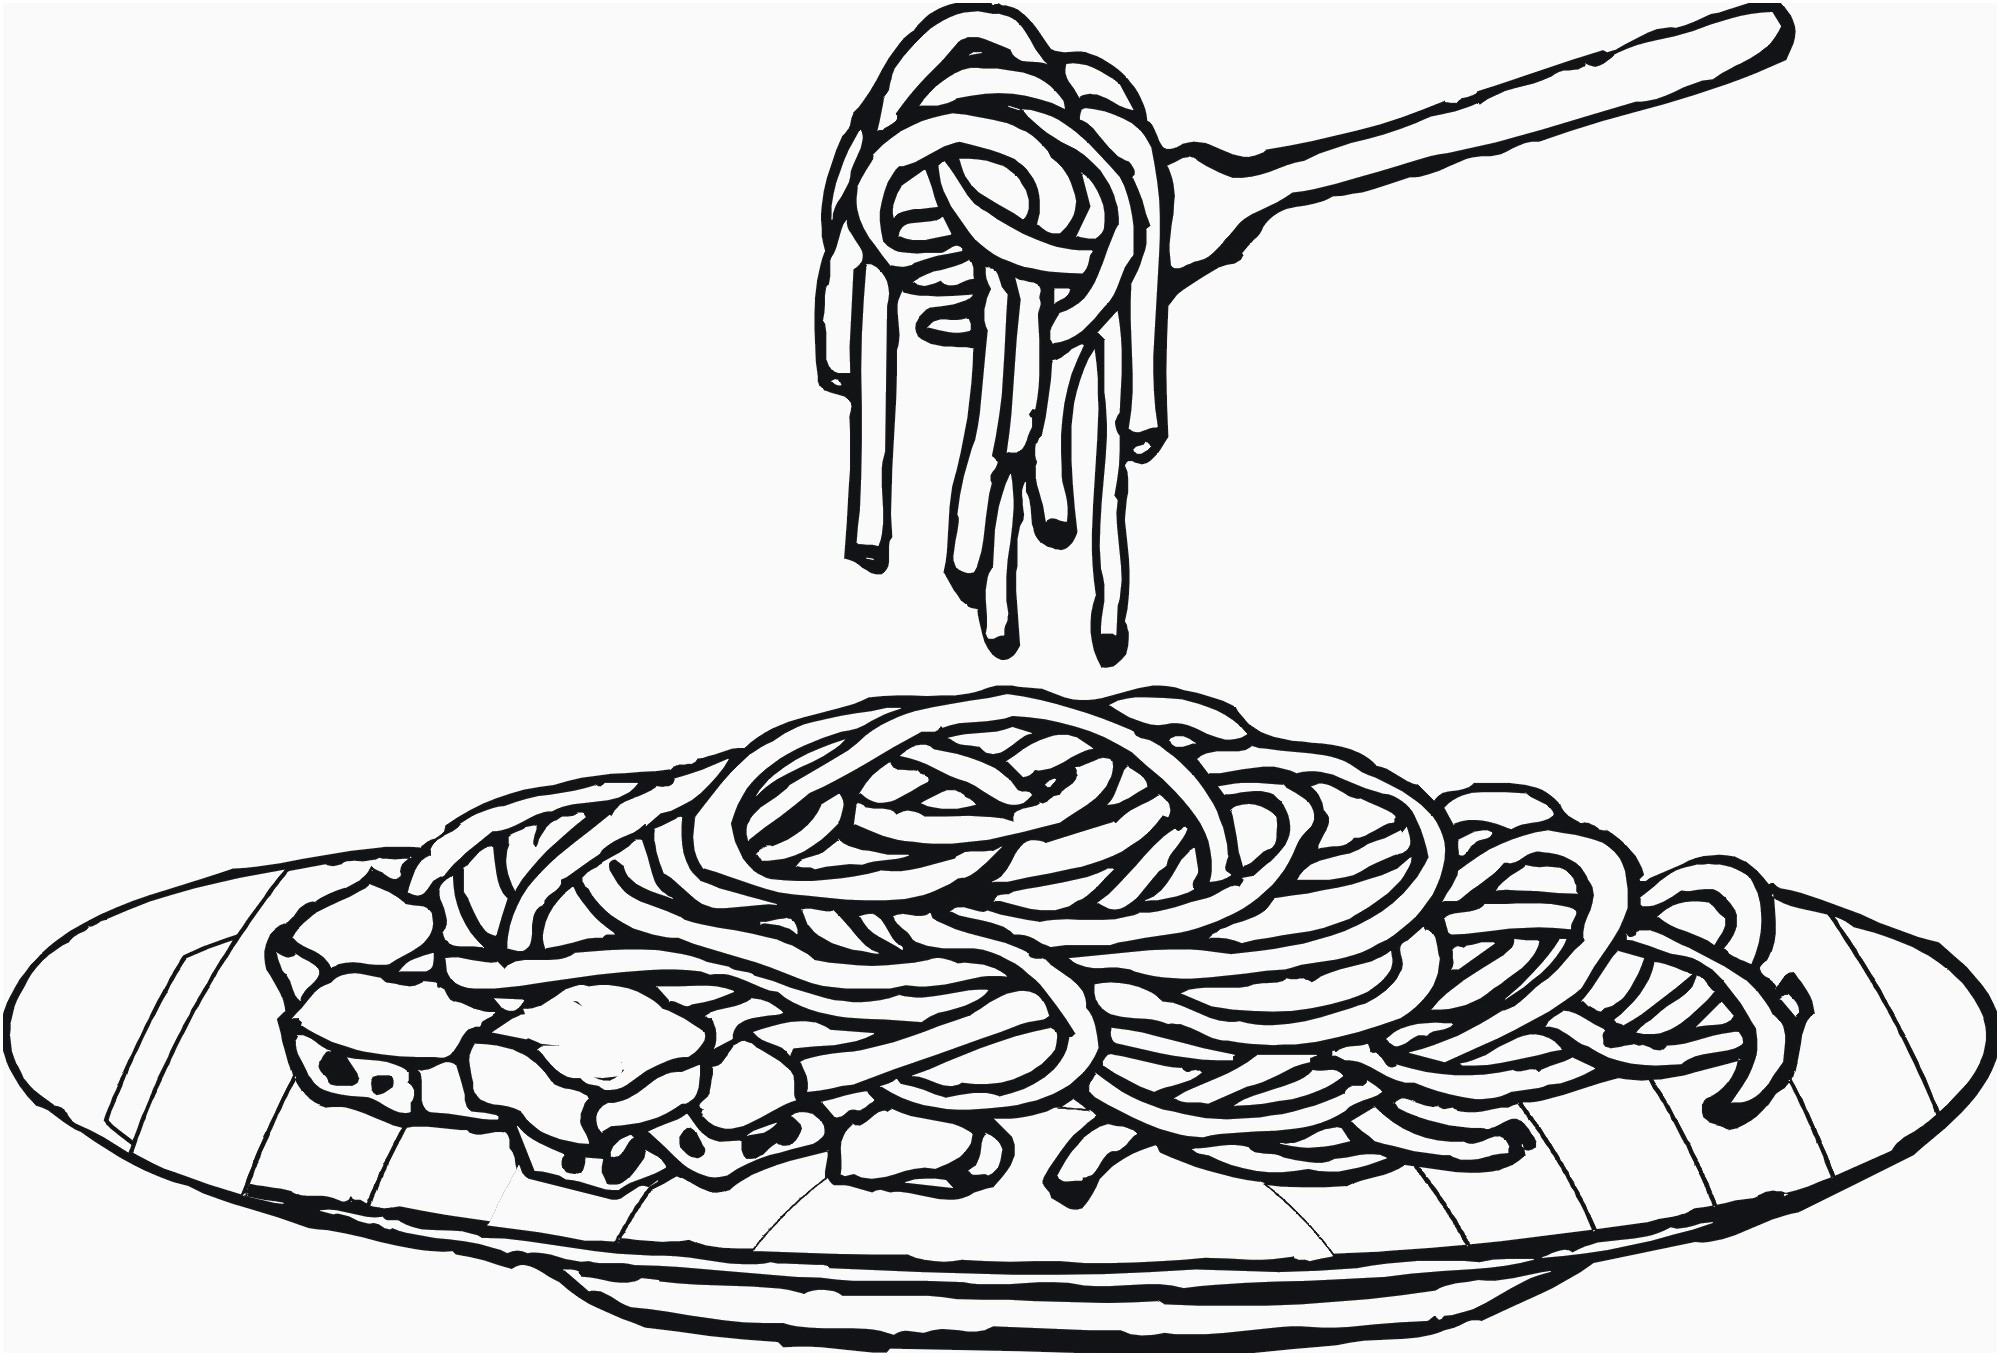 Pasta clipart draw. Spaghetti drawing at paintingvalley